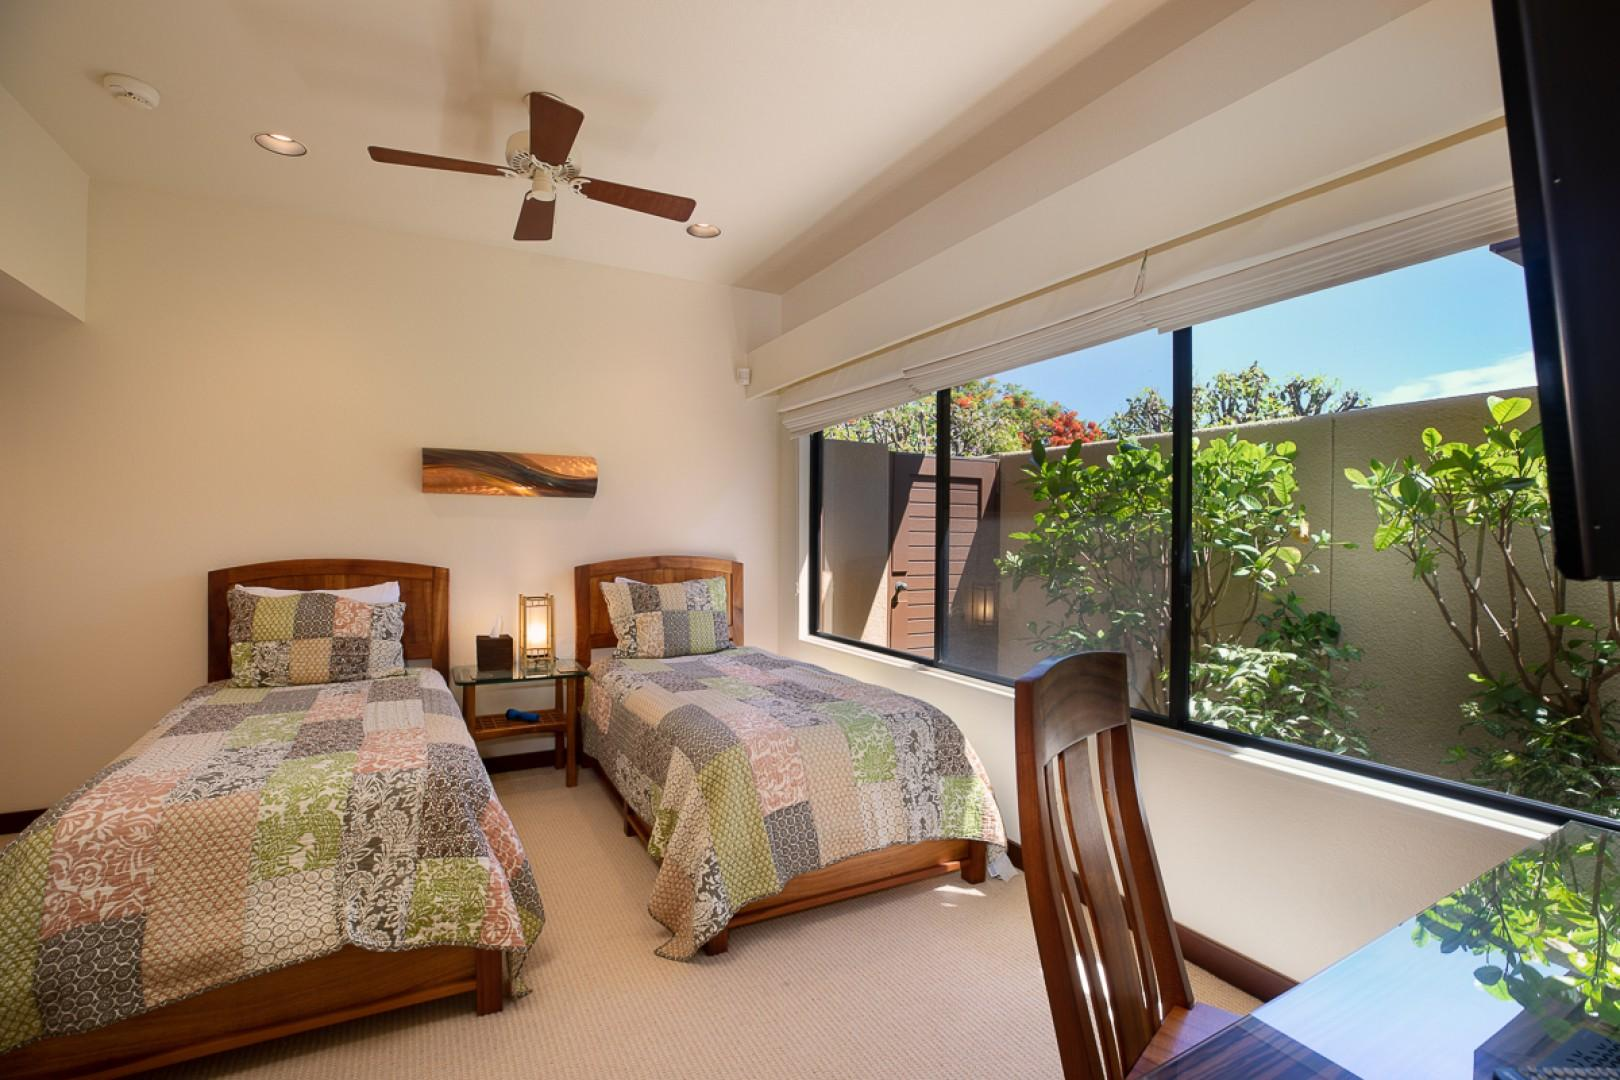 Third Bedroom with Garden View